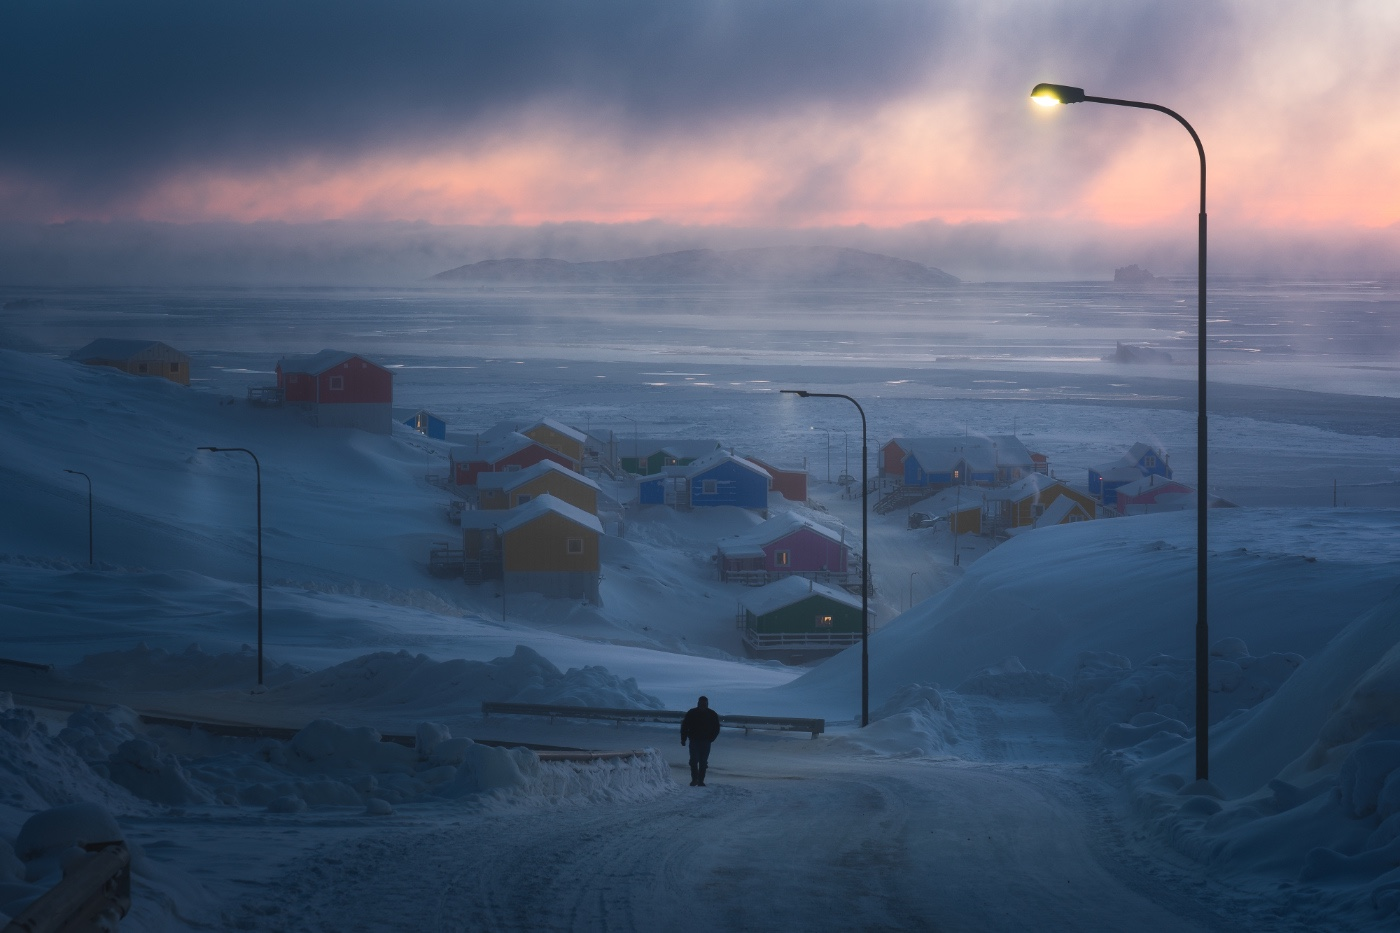 March-is-the-coldest-month-of-Upernavik-in-northwest-Greenland-with-an-average-temperature-of-minus-23-degrees-Celsius.jpg